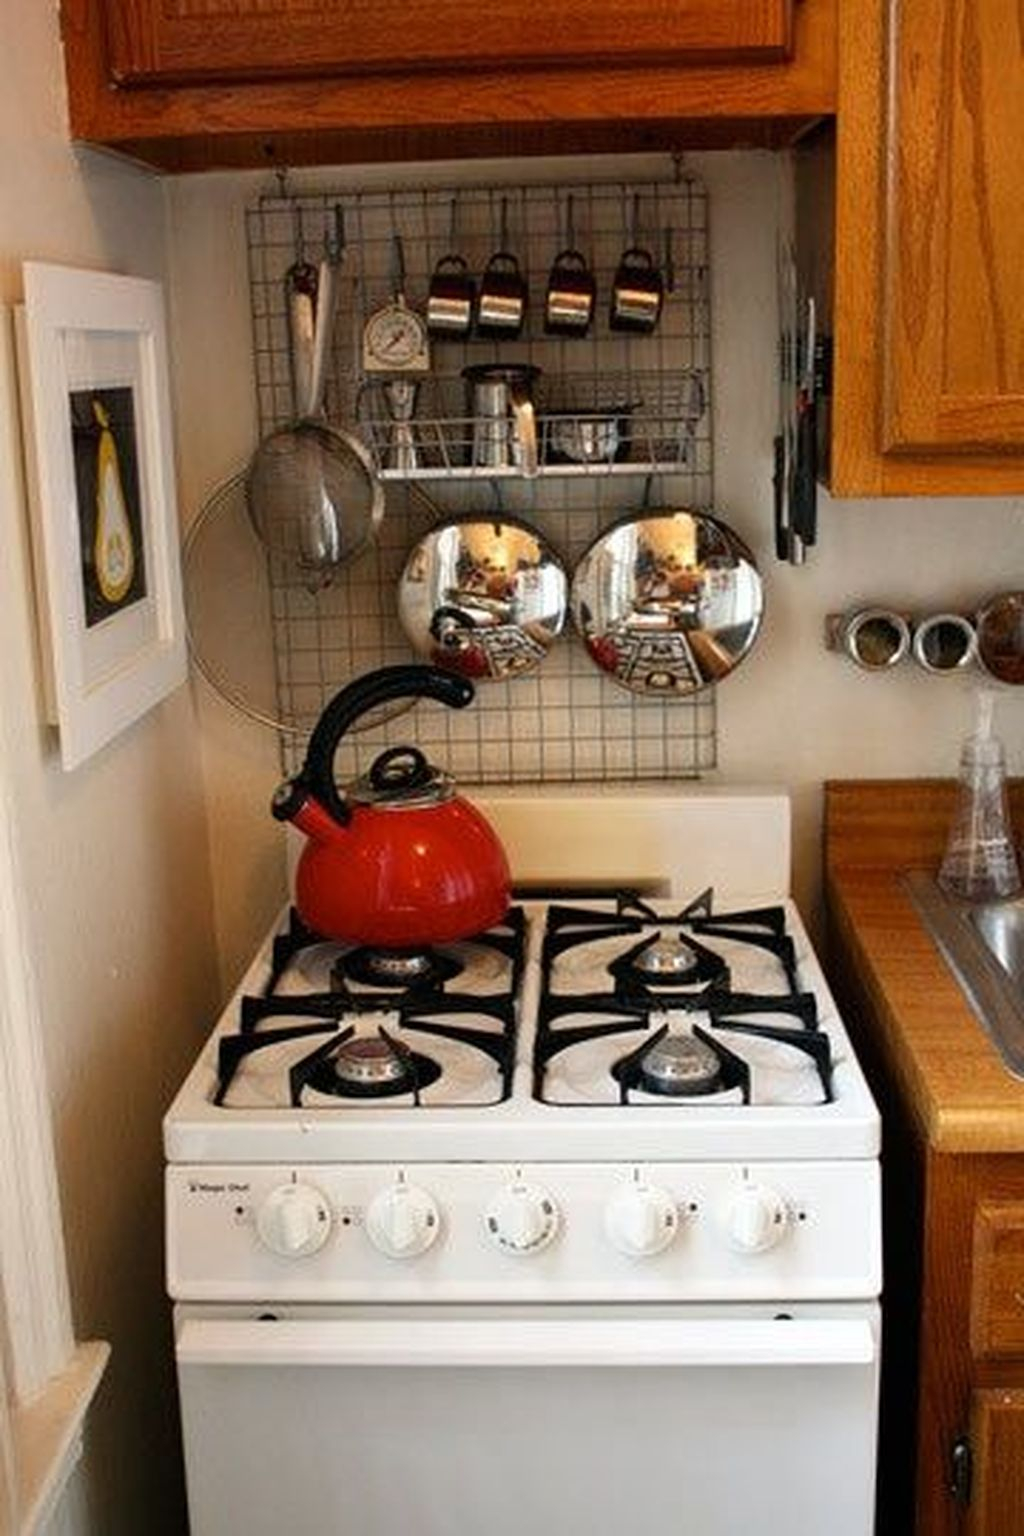 35 Brilliant Small Apartment Kitchen Ideas - HOMISHOME